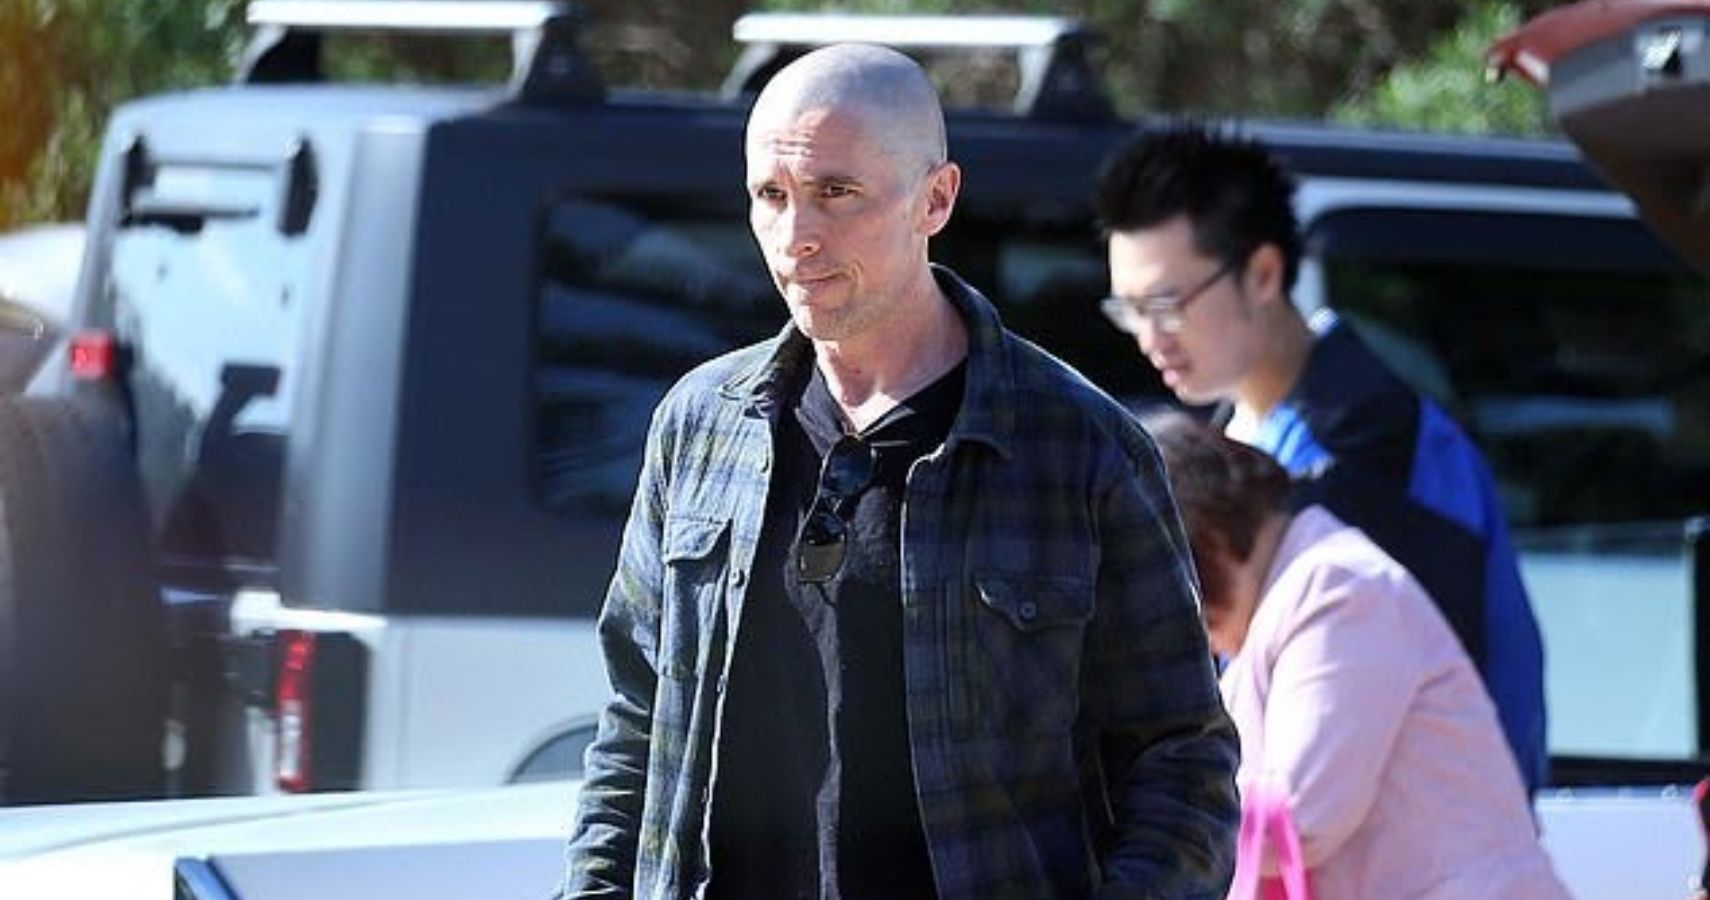 Christian Bale Shaves Head For Gorr The God Butcher Role In Thor: Love And Thunder